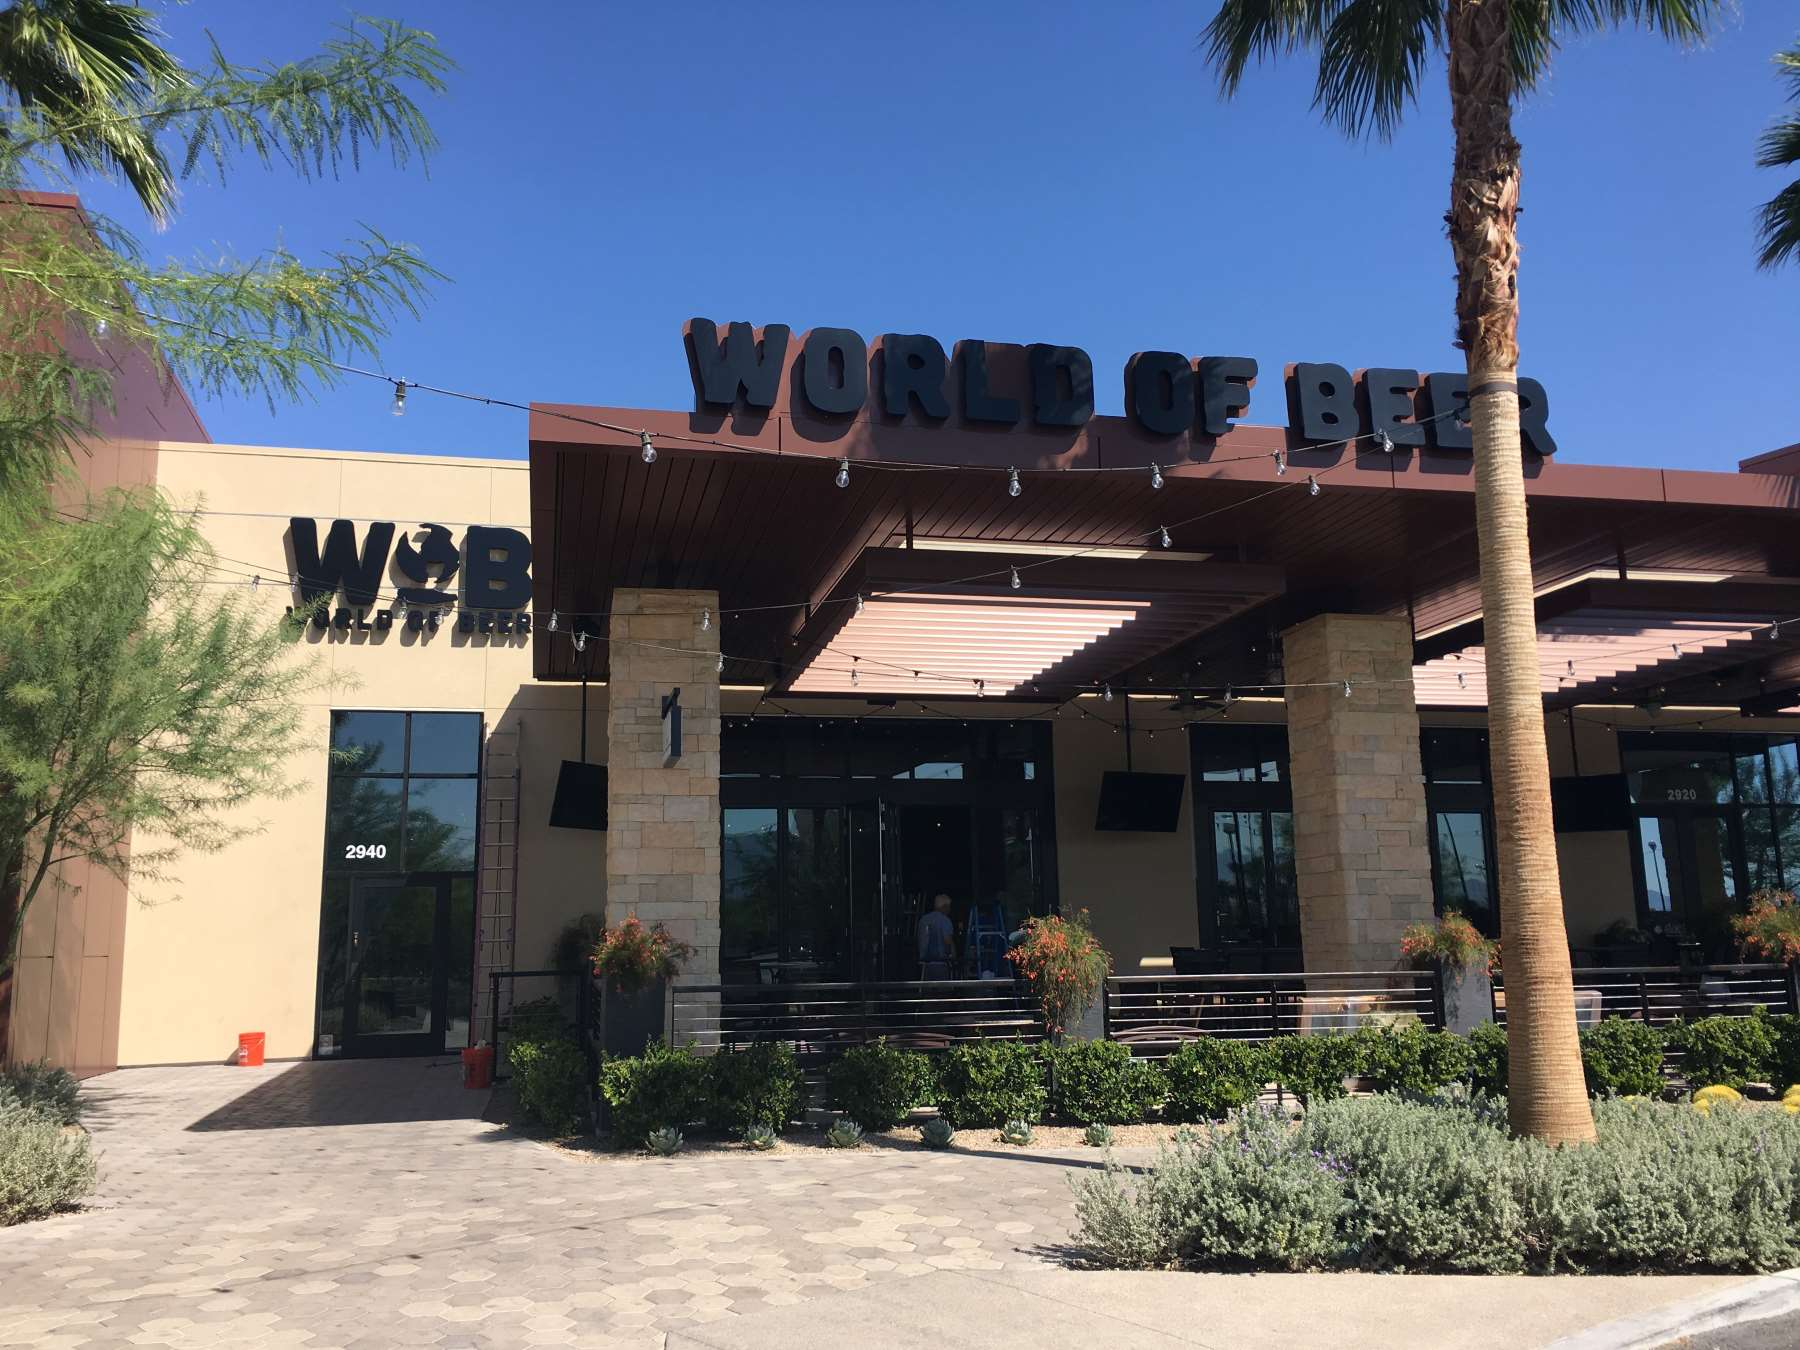 World of Beer at Galleria at Sunset